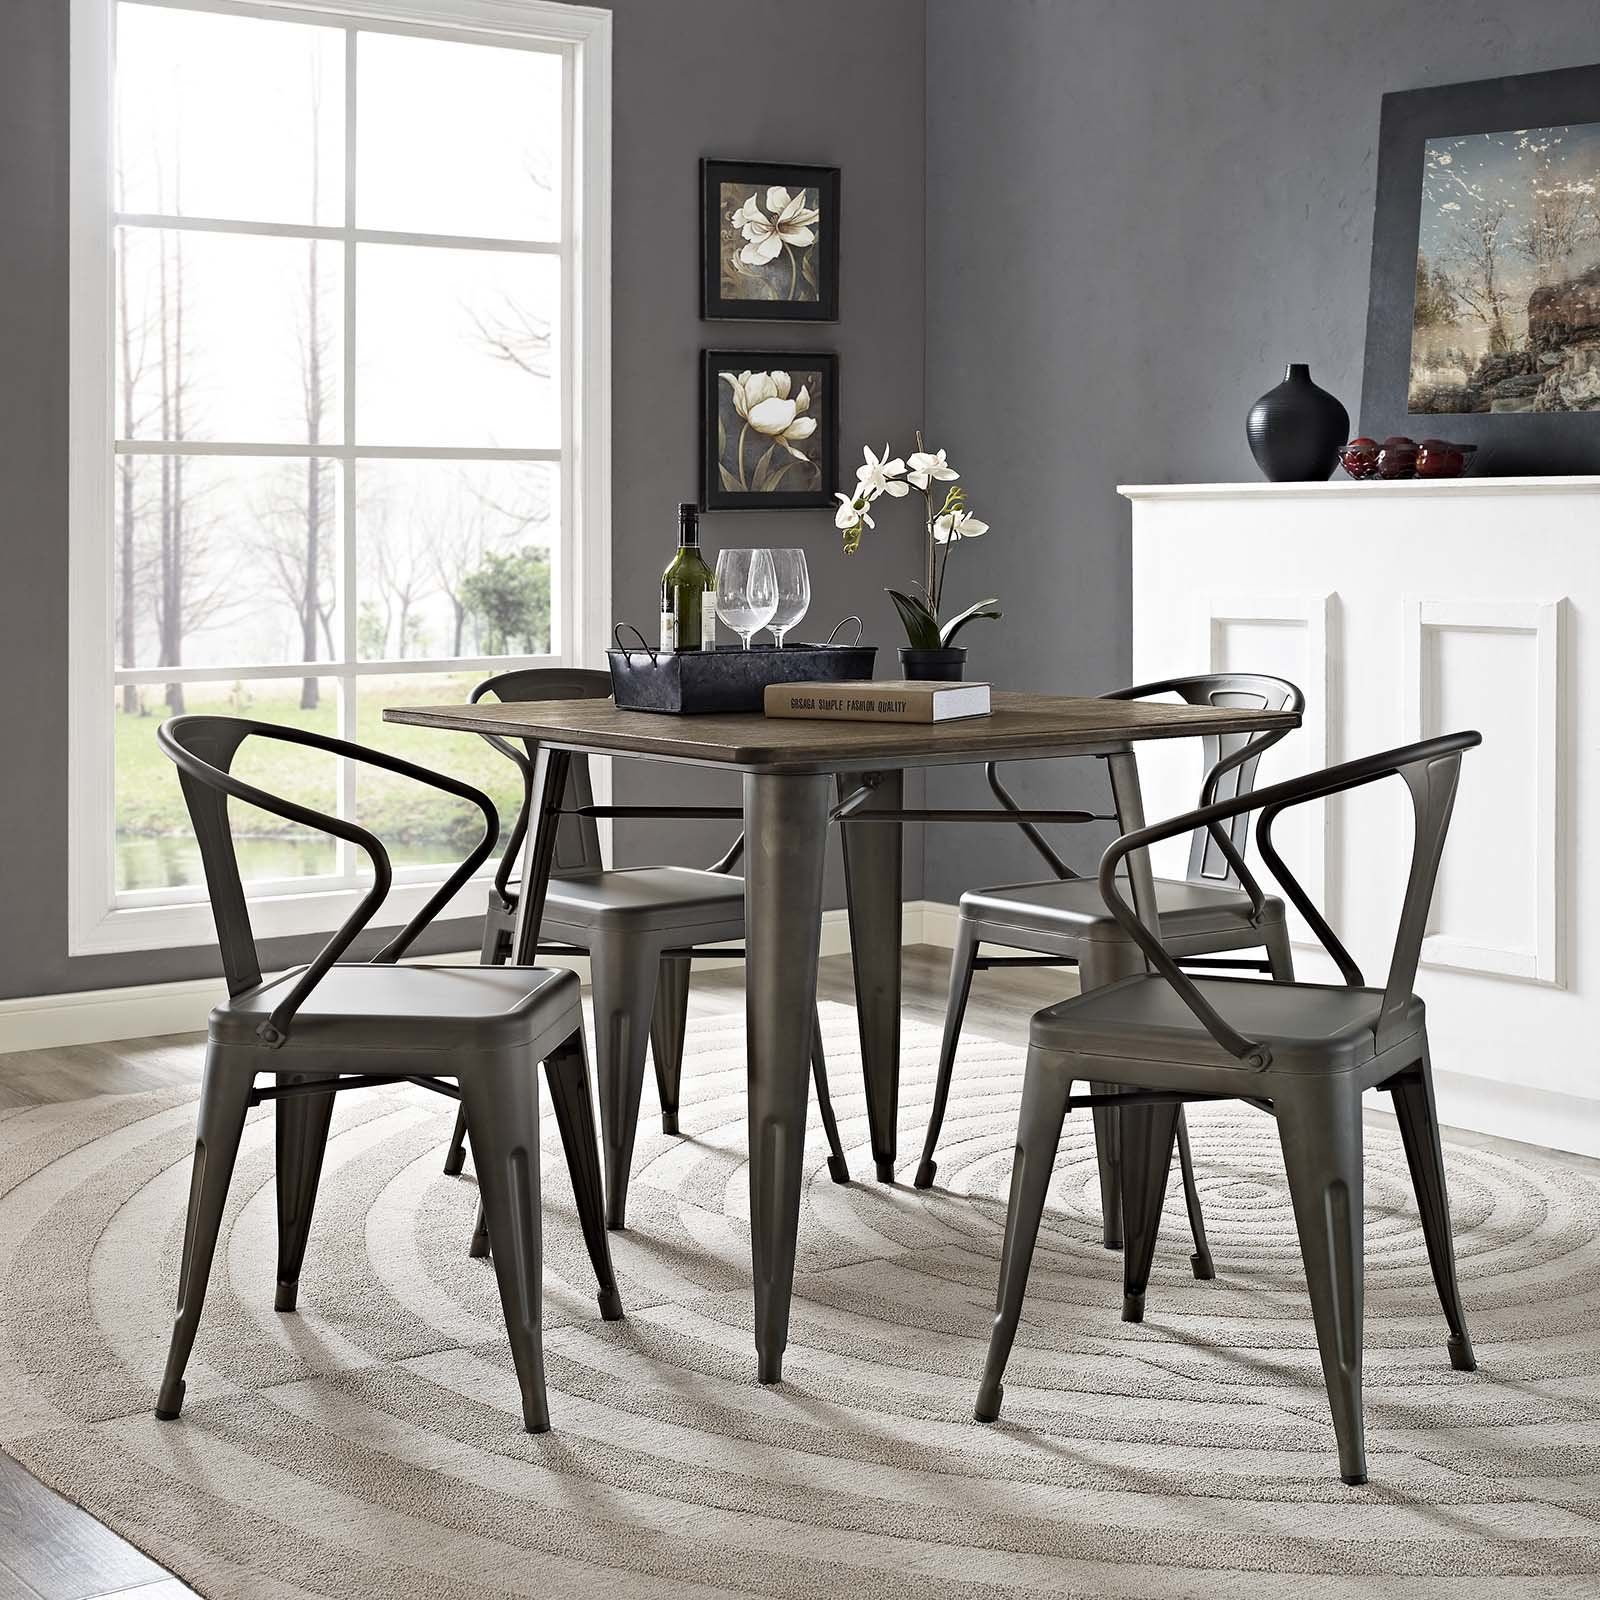 Modway Furniture Modern Promenade Dining Chair Set Of 4